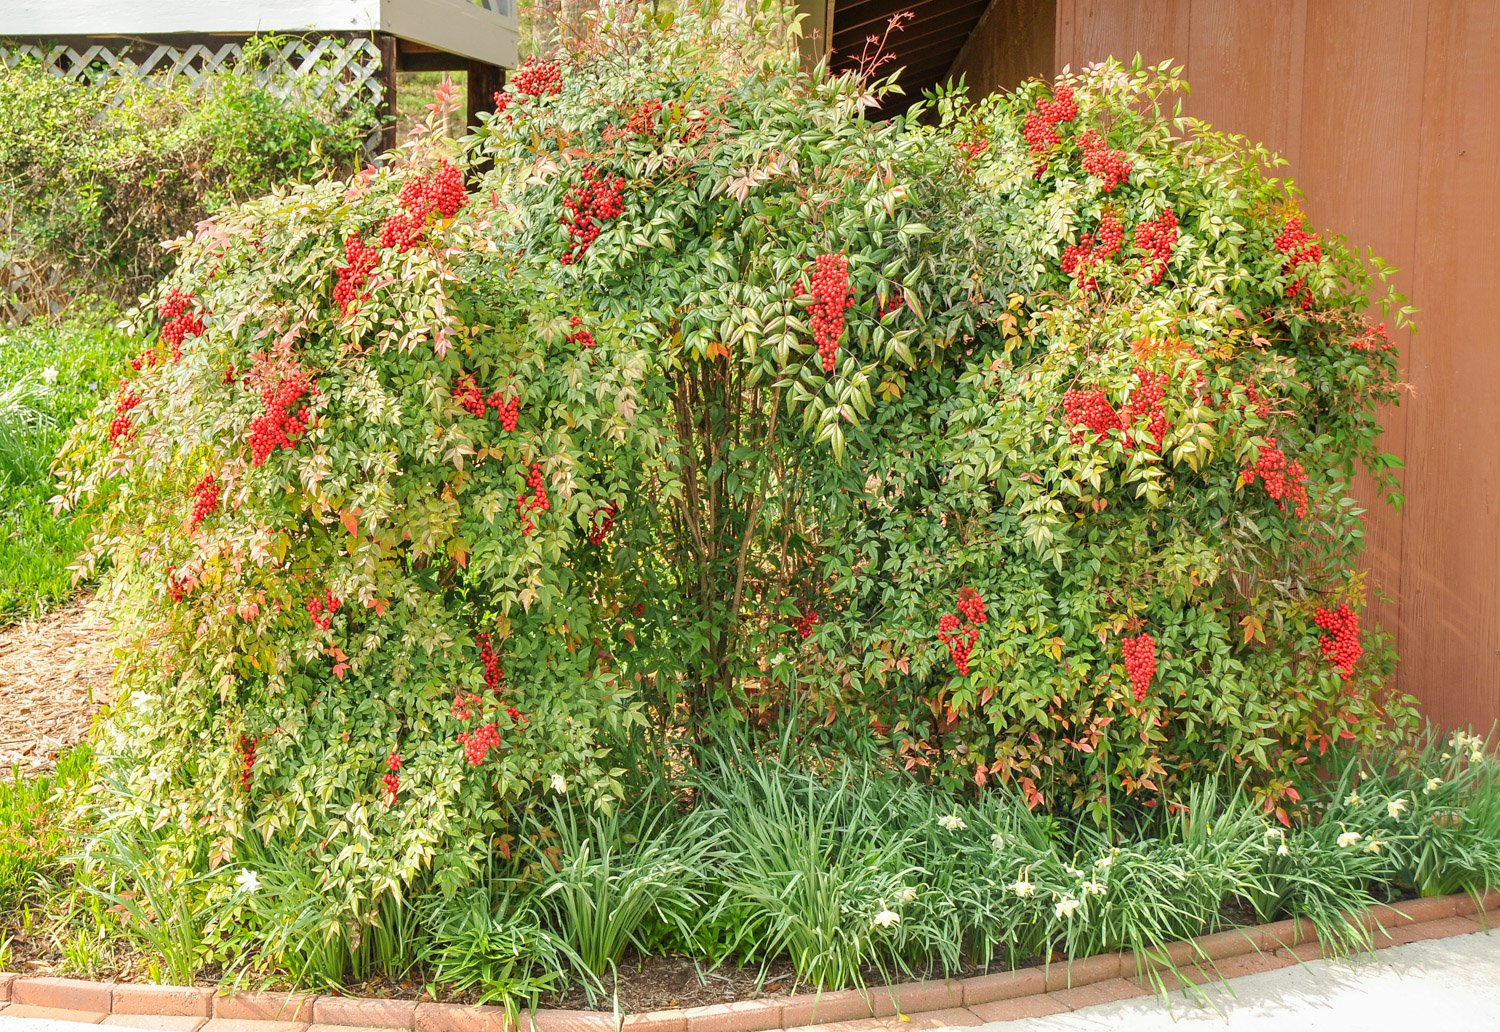 Clusters of red berries on mature Nandina shrubs